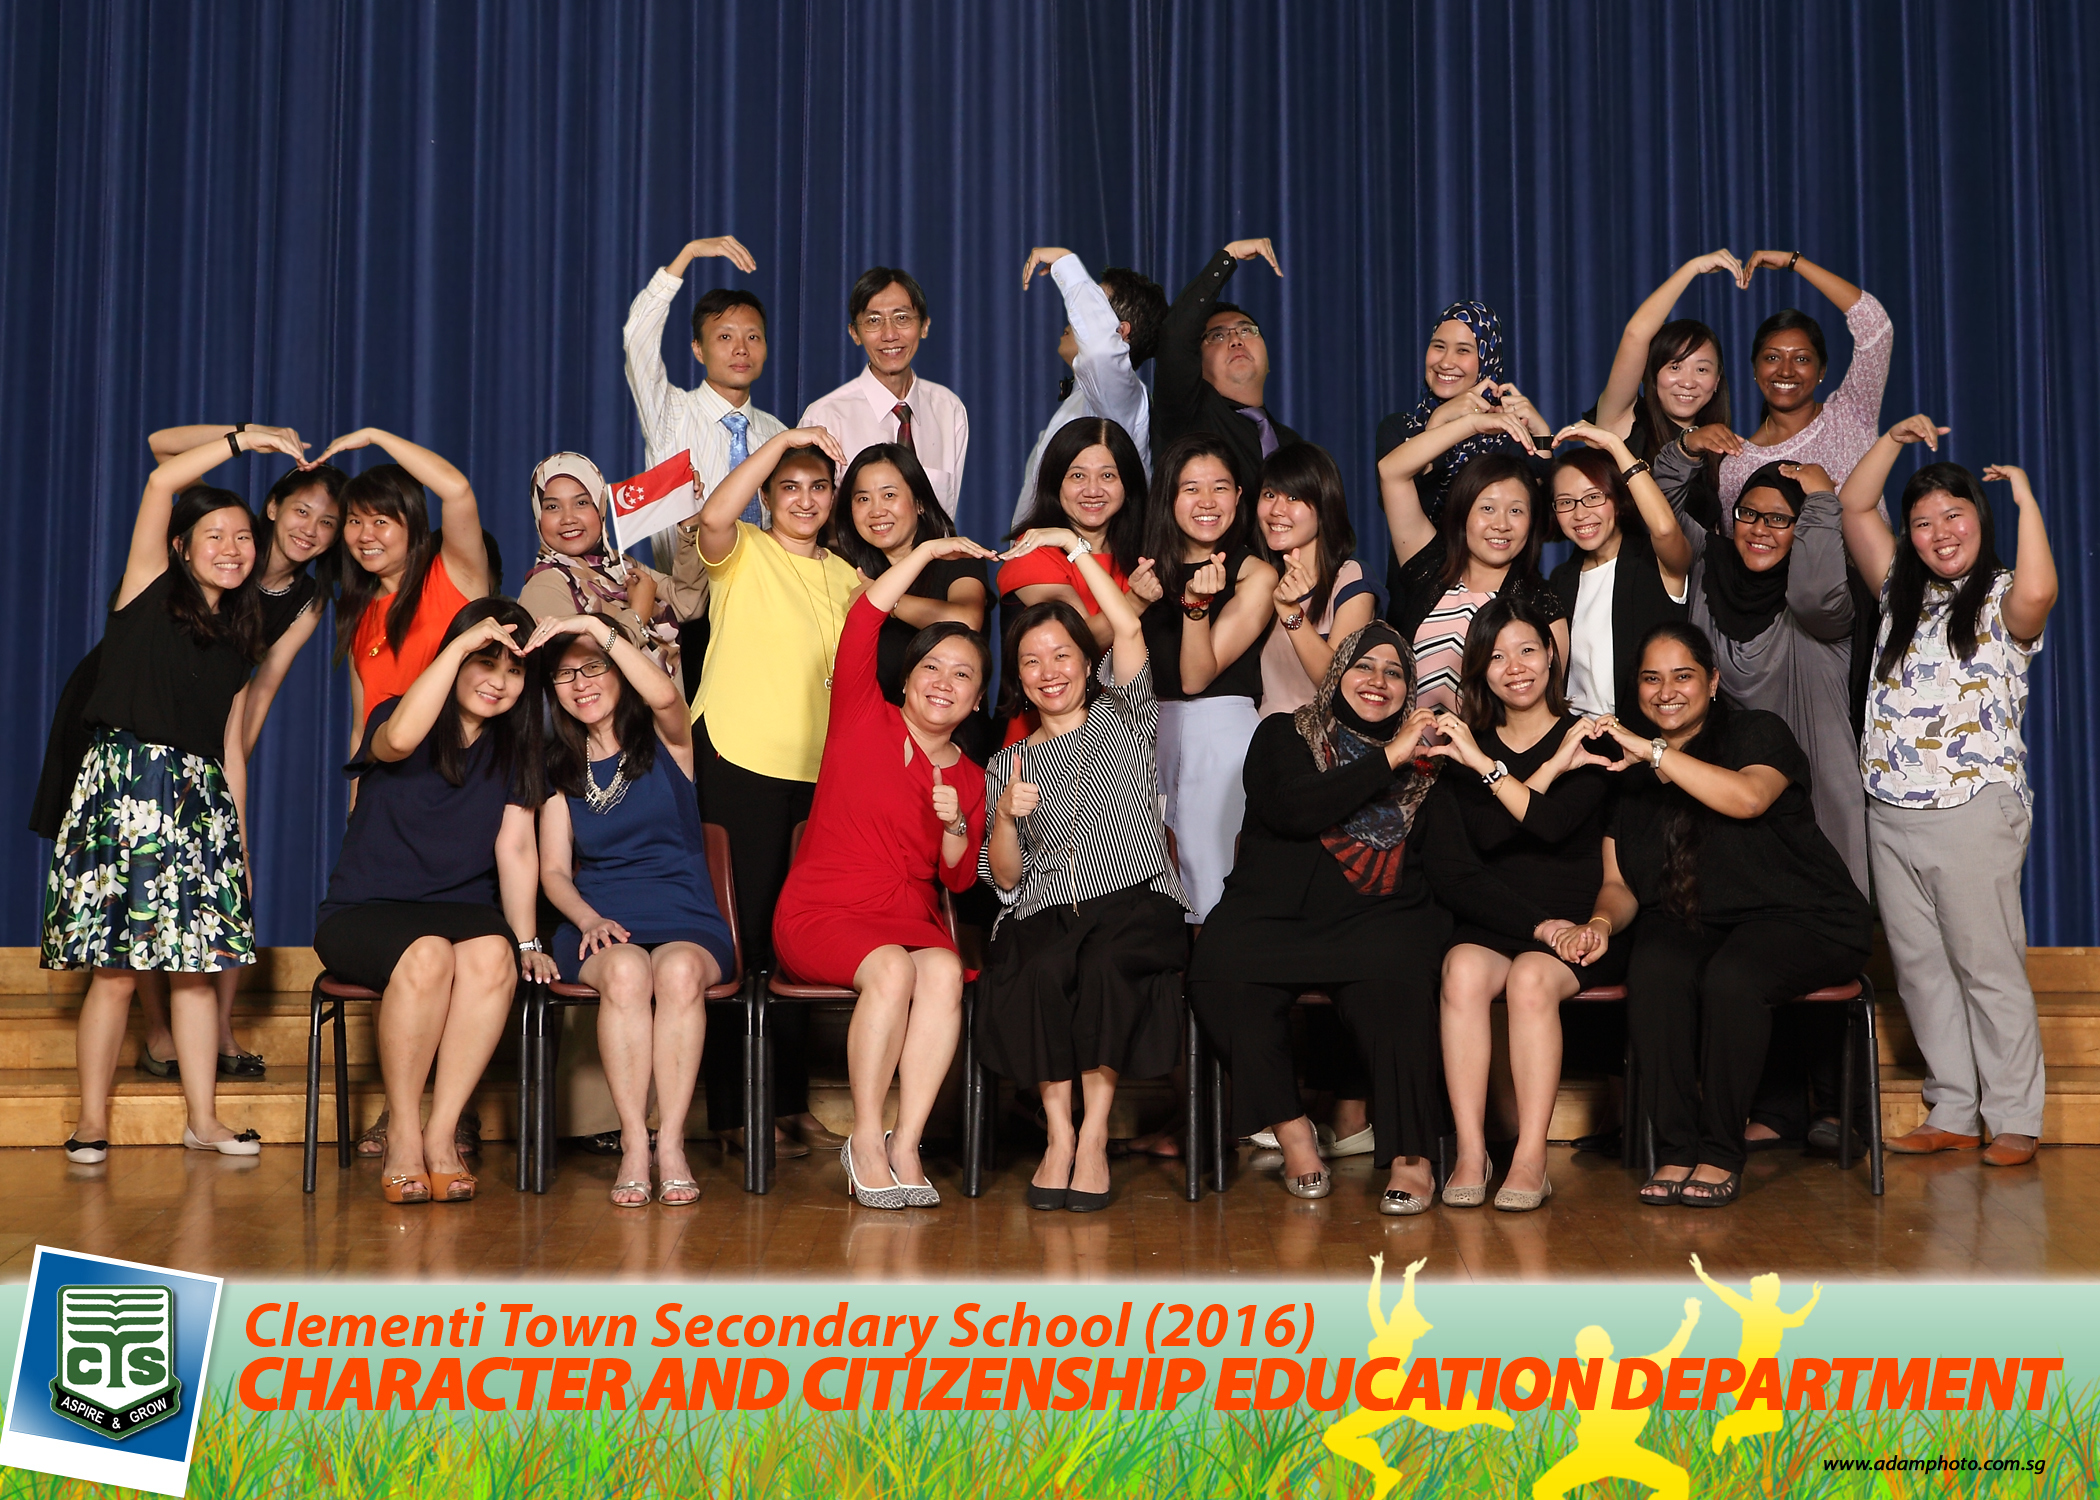 character and citizenship education department i.jpg